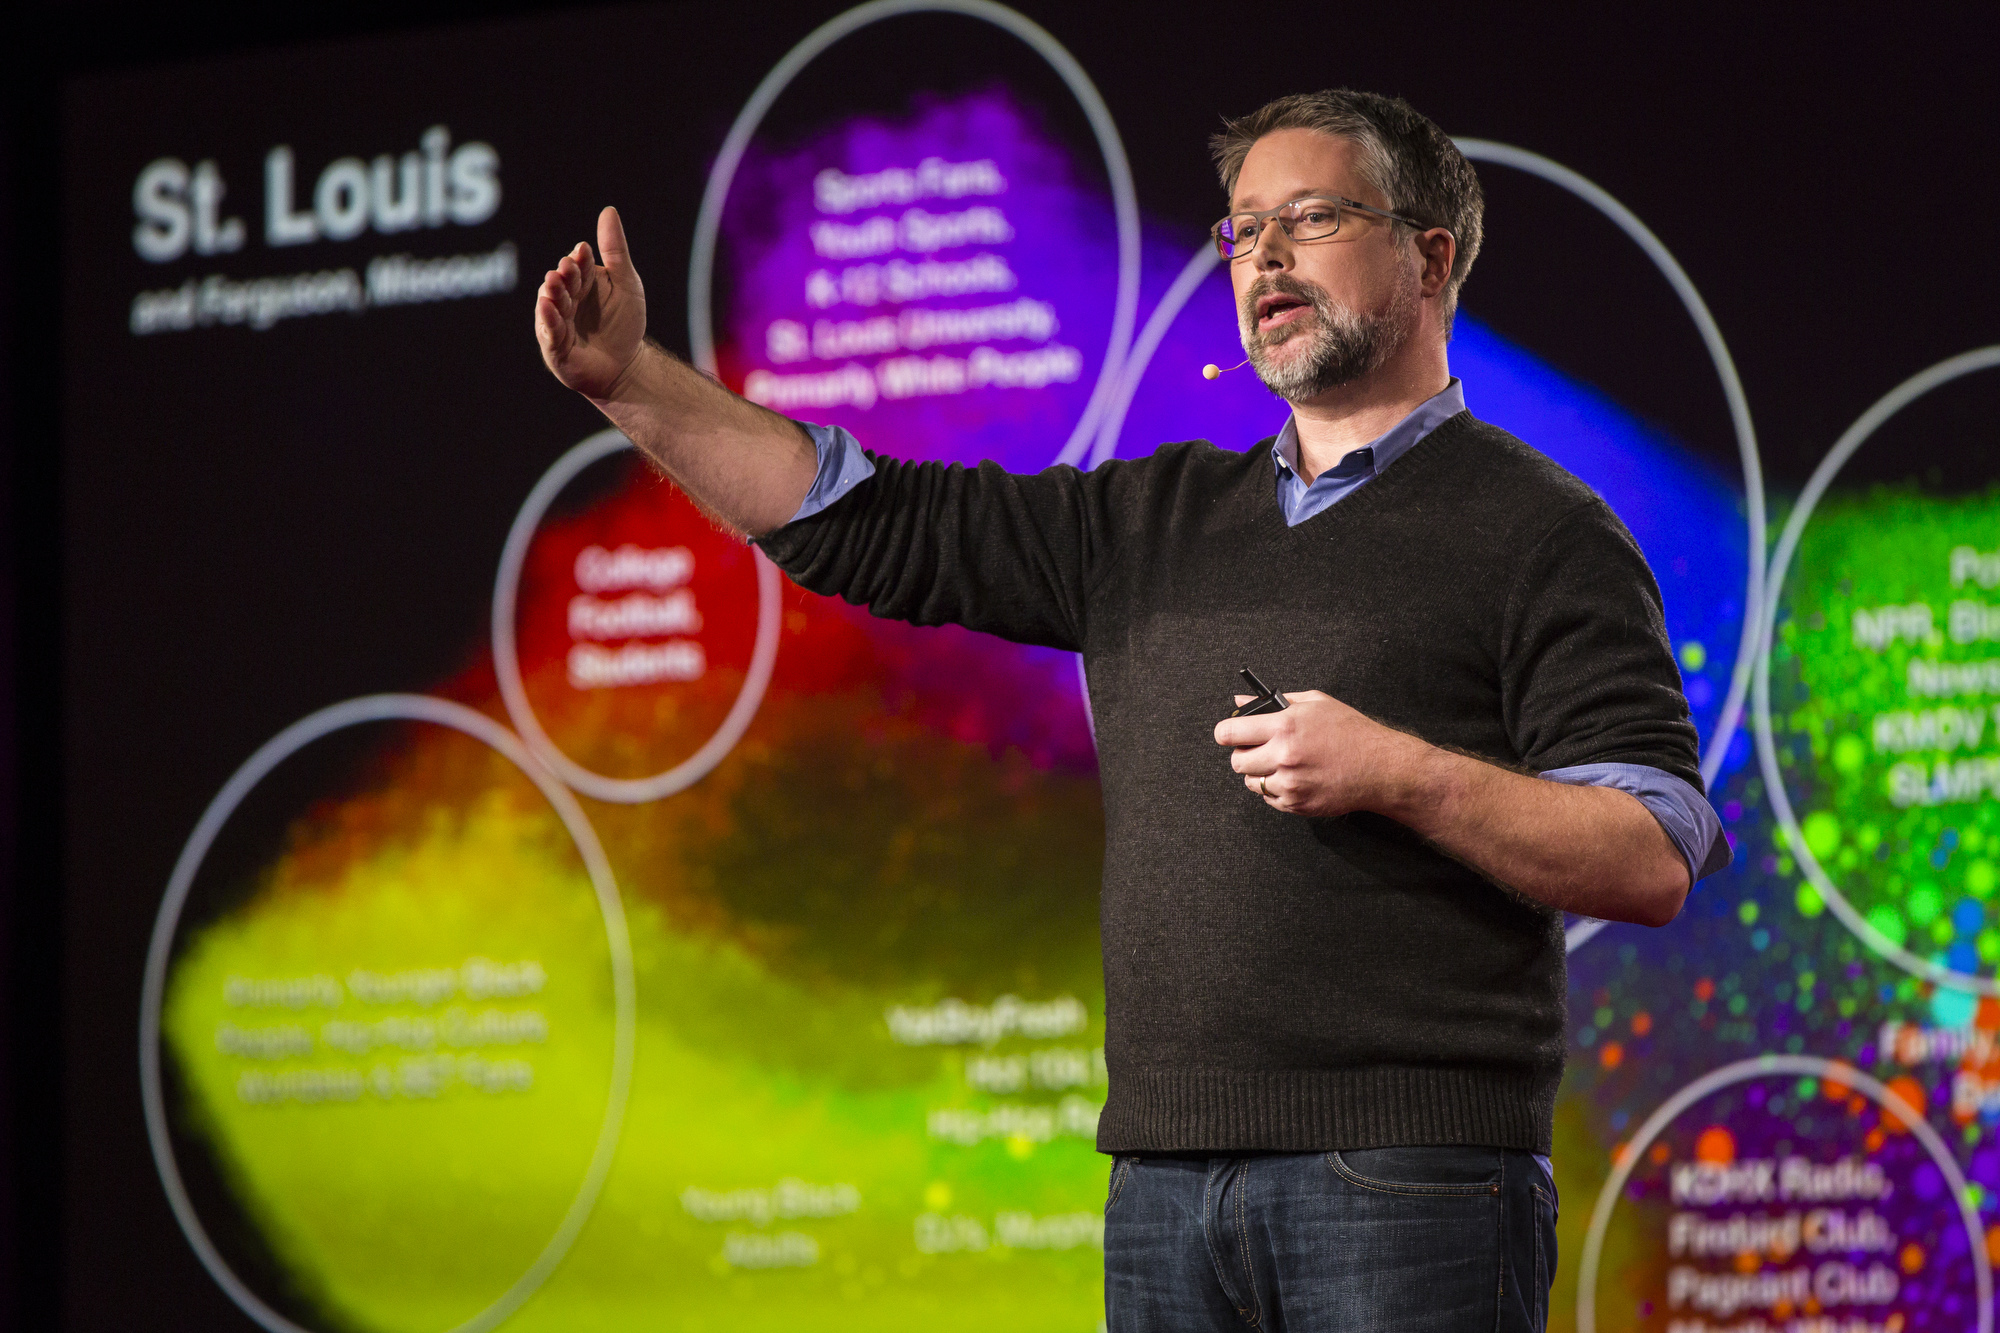 Dave Troy at TED University. TED2016. February 15-19, 2016, Vancouver Convention Center, Vancouver, Canada. Photo: Ryan Lash / TED